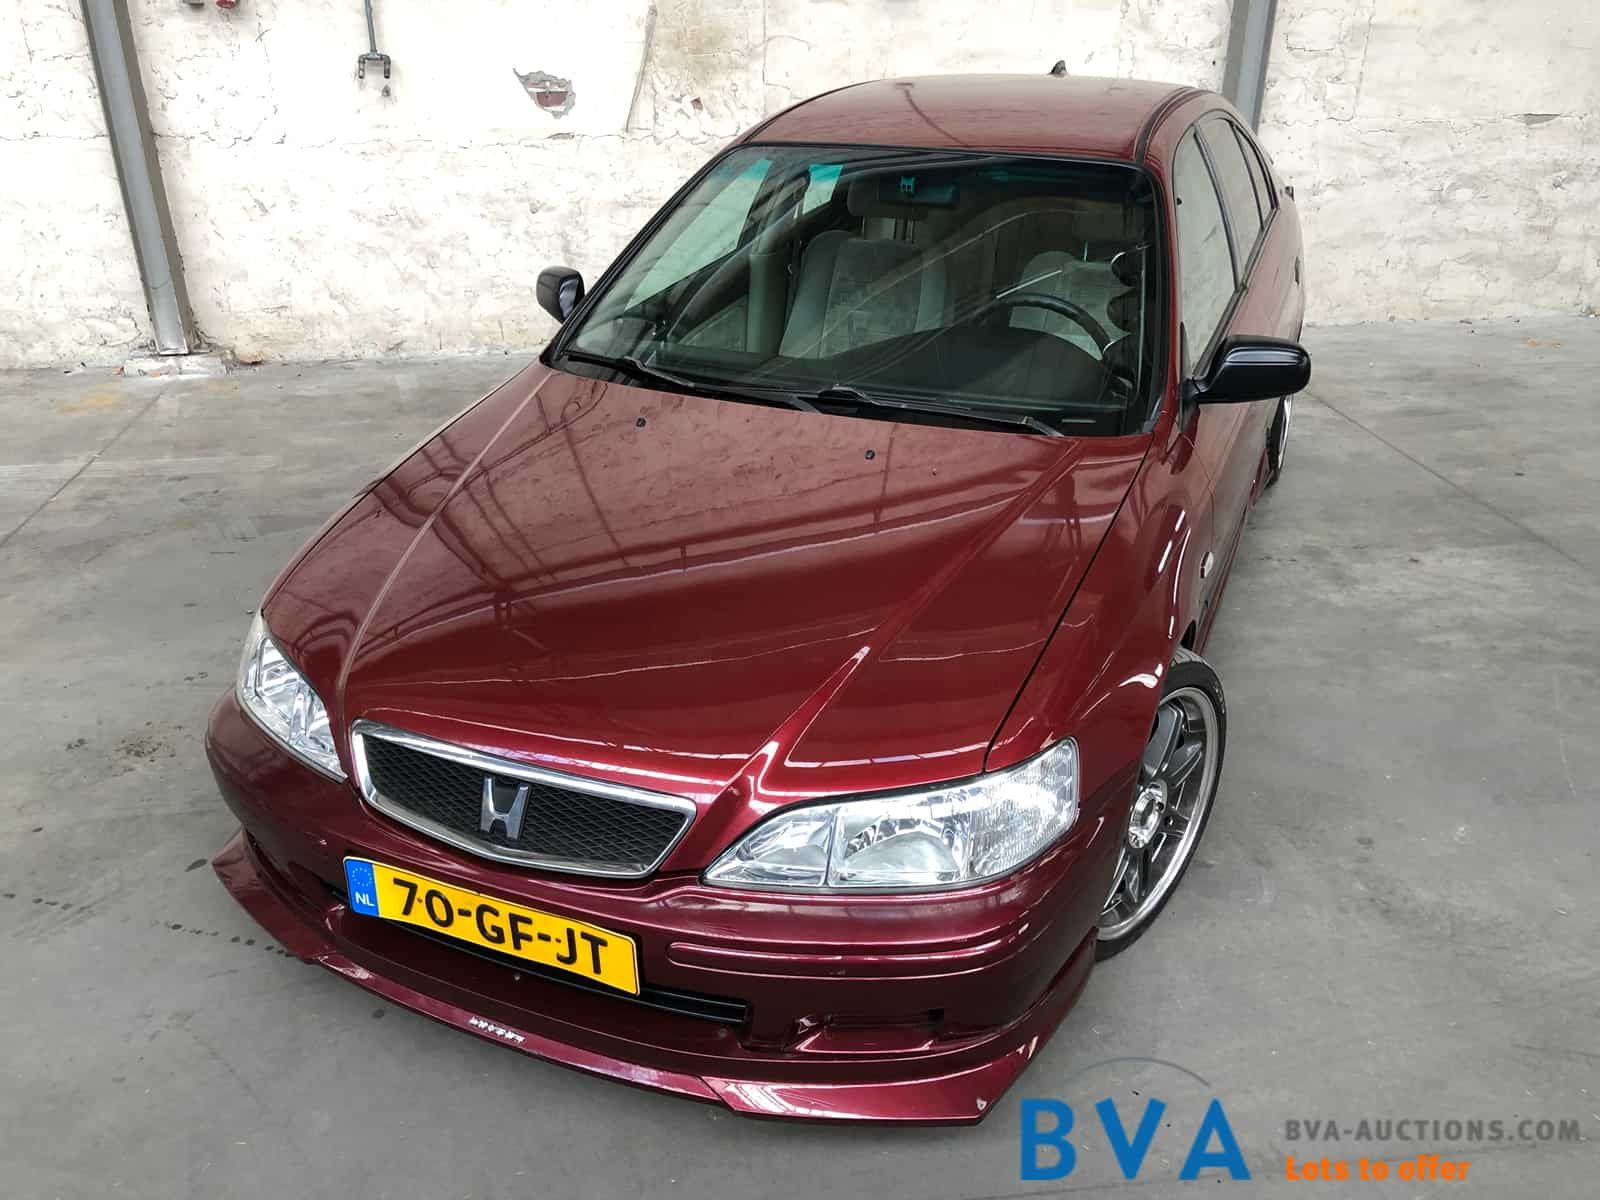 Honda Accord 1.8i LS 136 PS Automatik, 70-GF-JT.